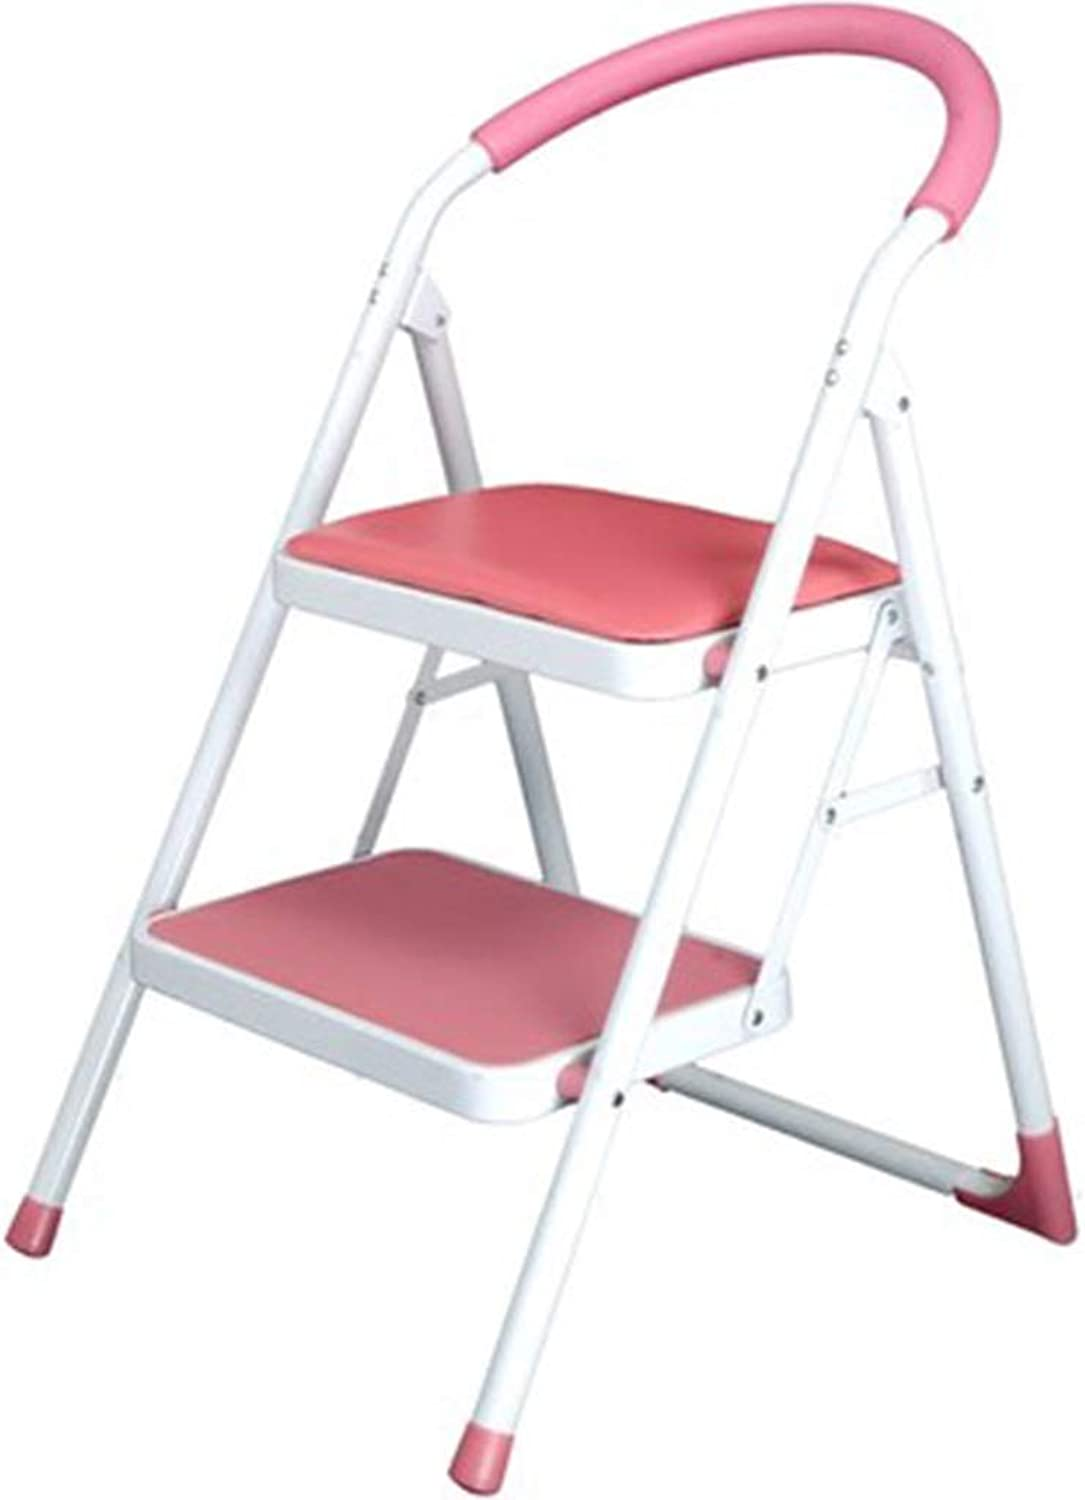 Stools Ladder Stool Two-Tier Household Ladder Two-Step Ladder Mobile Stair Chair Herringbone Ladder Climbing Ladder Multi-Function Ladder (color   Pink, Size   47  52  82cm)